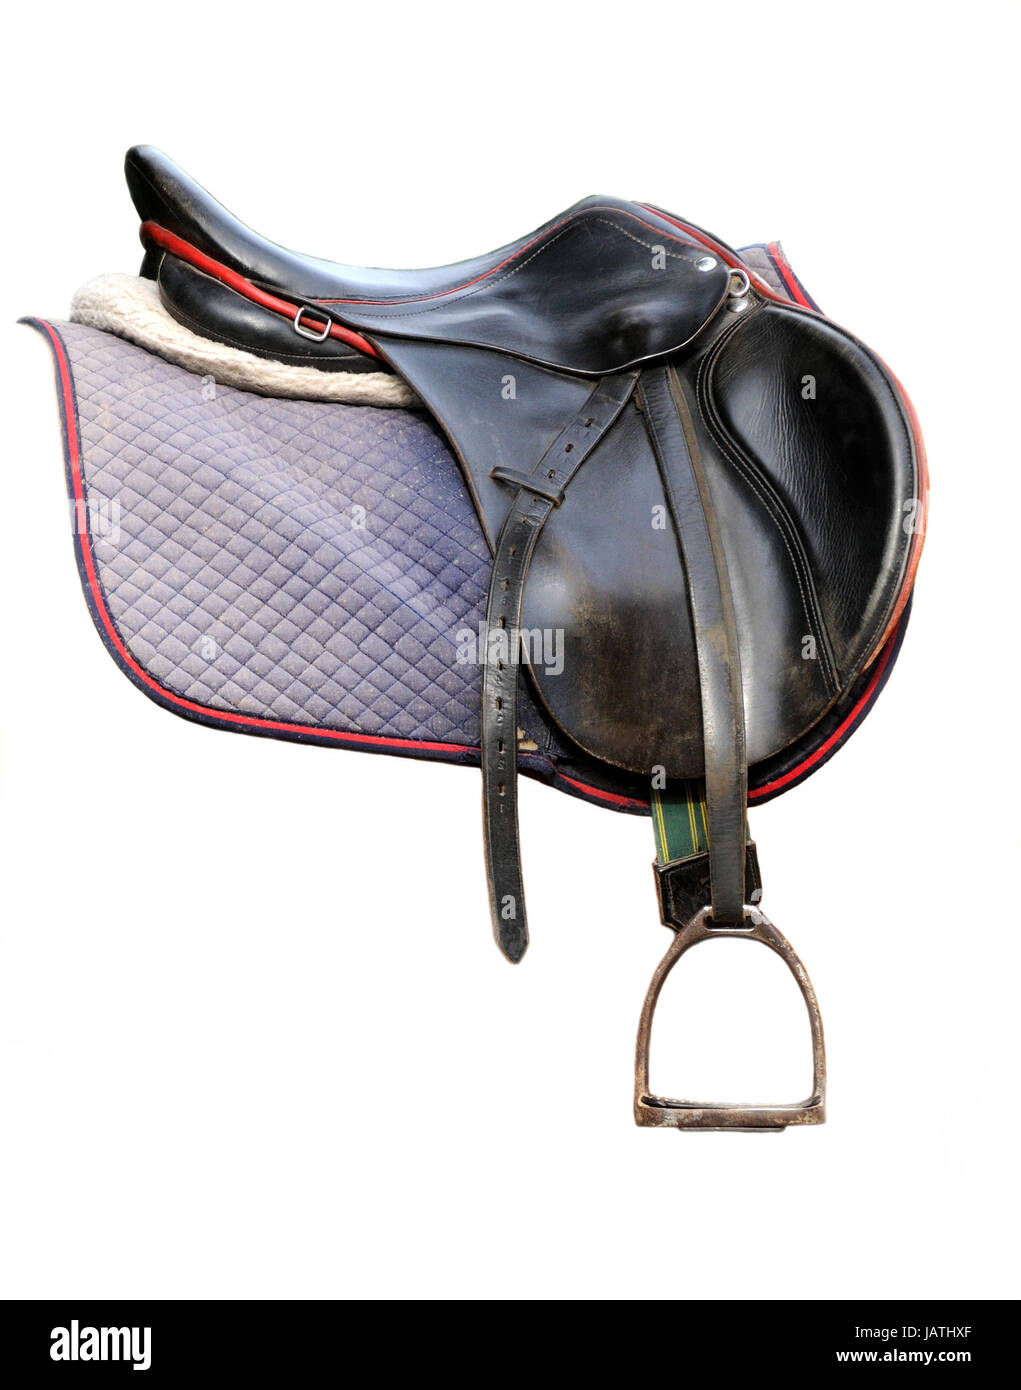 Black leather dressage saddle isolated on white background - Stock Image